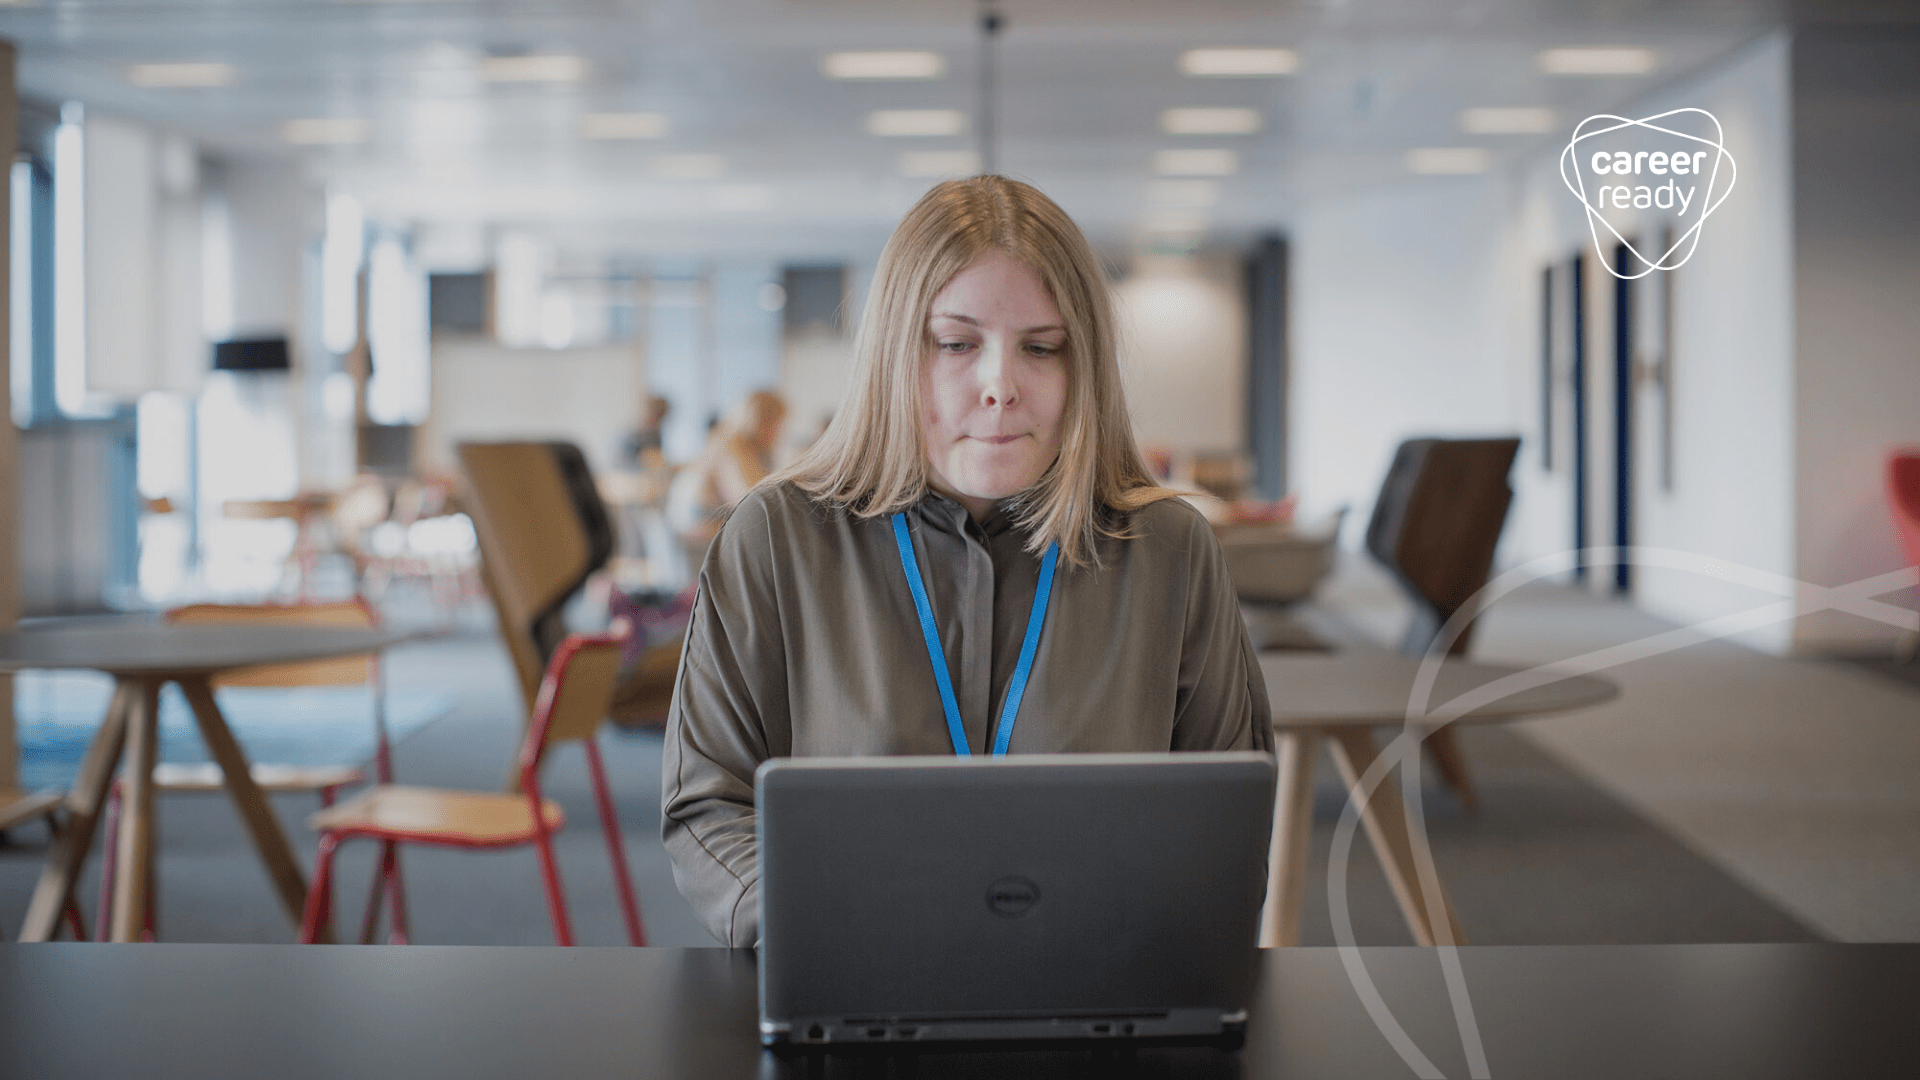 A student sits at a laptop working